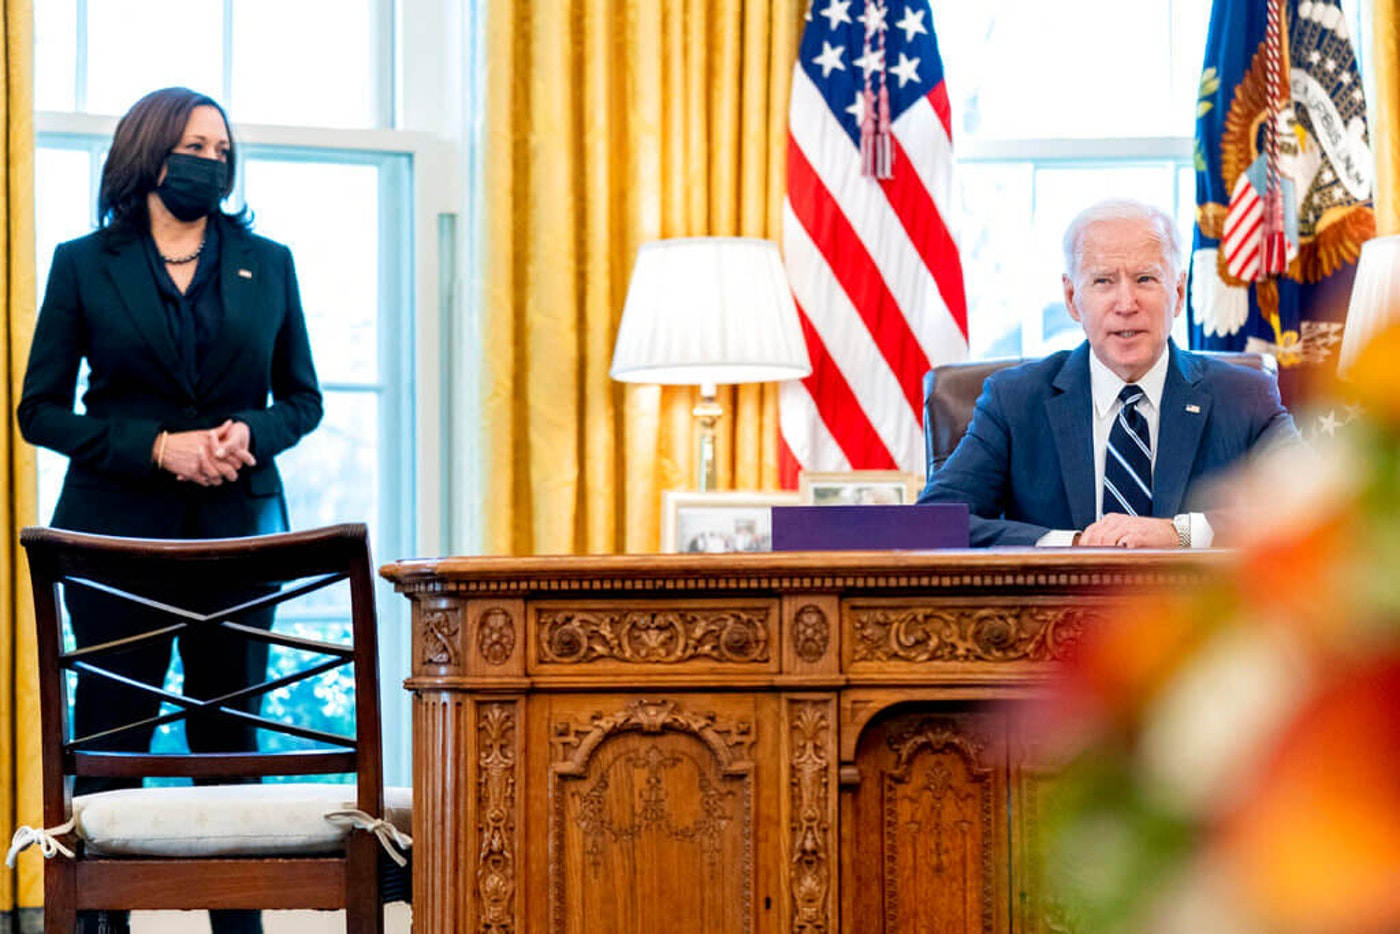 President Joe Biden, accompanied by Vice President Kamala Harris, speaks before signing the American Rescue Plan, a coronavirus relief package, in the Oval Office of the White House Thursday. Image via AP Photo/Andrew Harnik.